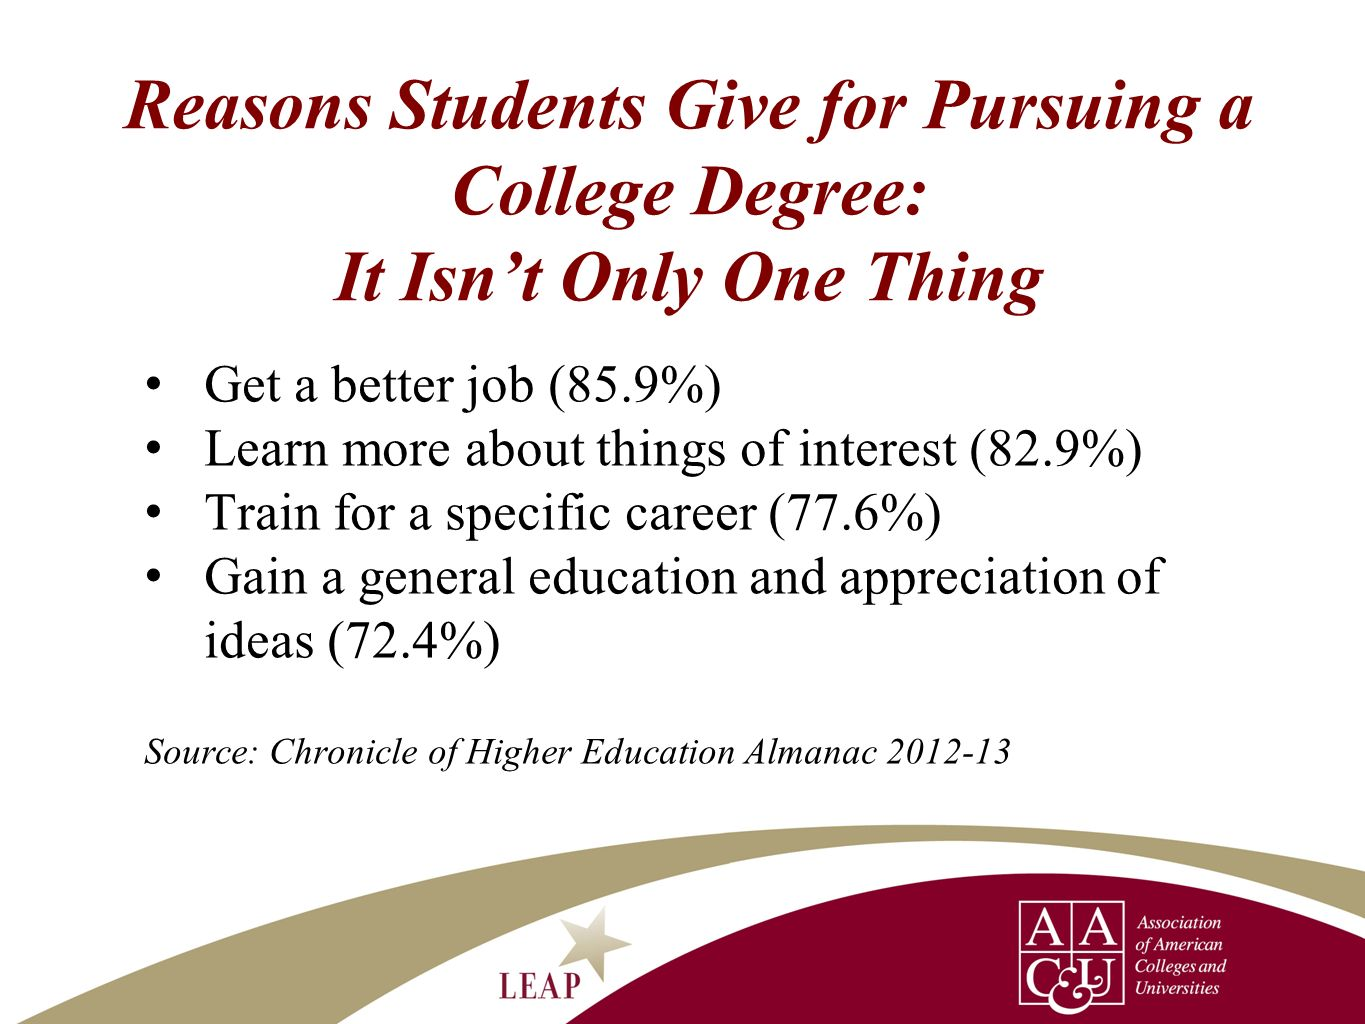 Reasons Students Give for Pursuing a College Degree: It Isn't Only One Thing